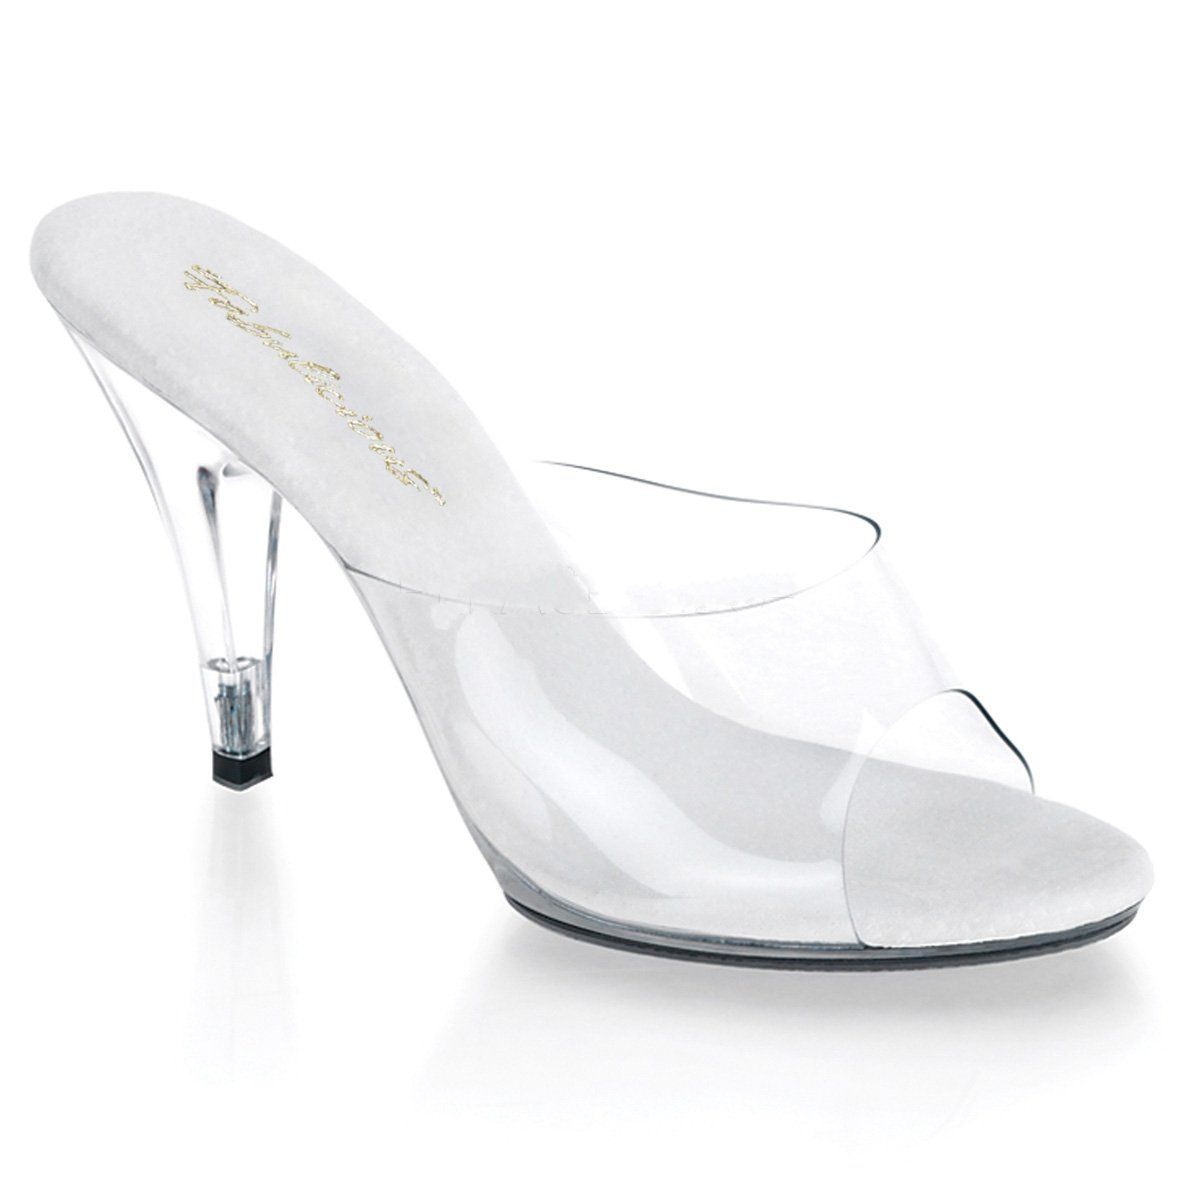 "FABULICIOUS Caress-401 Series 4/"" Heel Party Prom Bridal Slide Sandal"